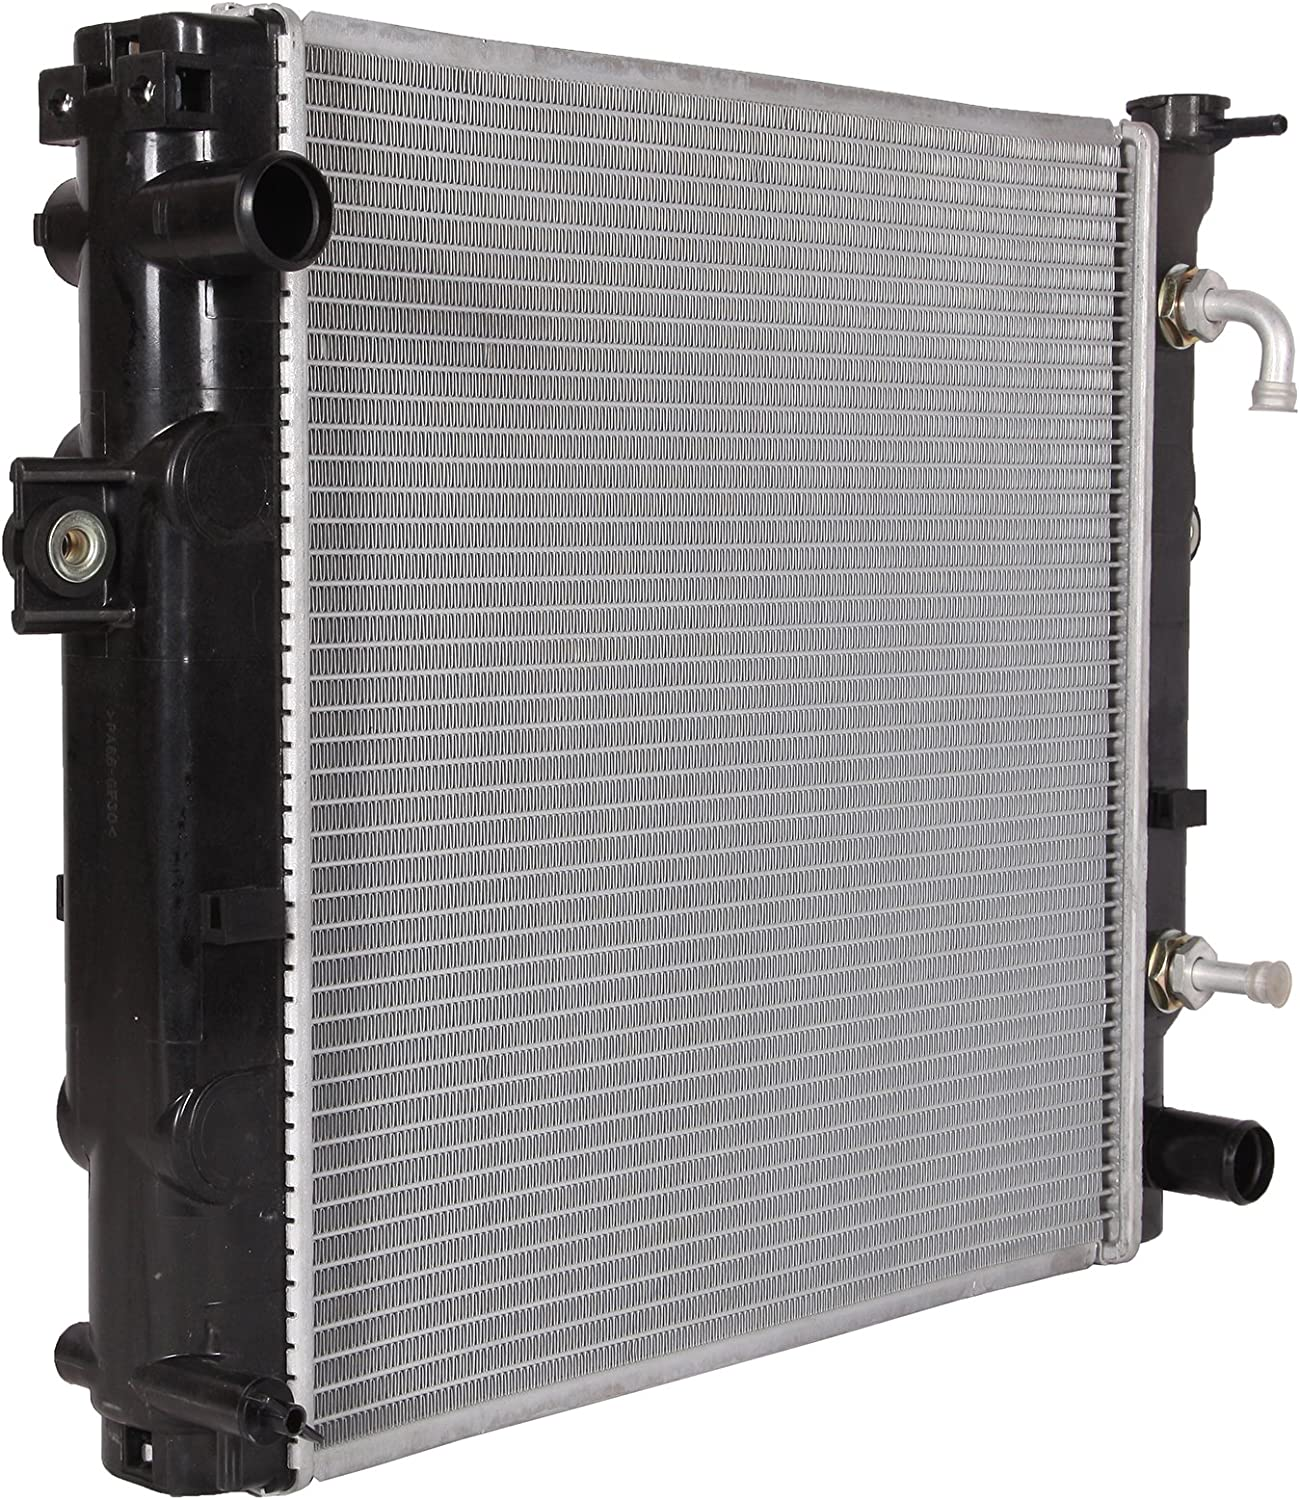 SCITOO Truck Radiator 2207-001 fits for UD Series with Warranty